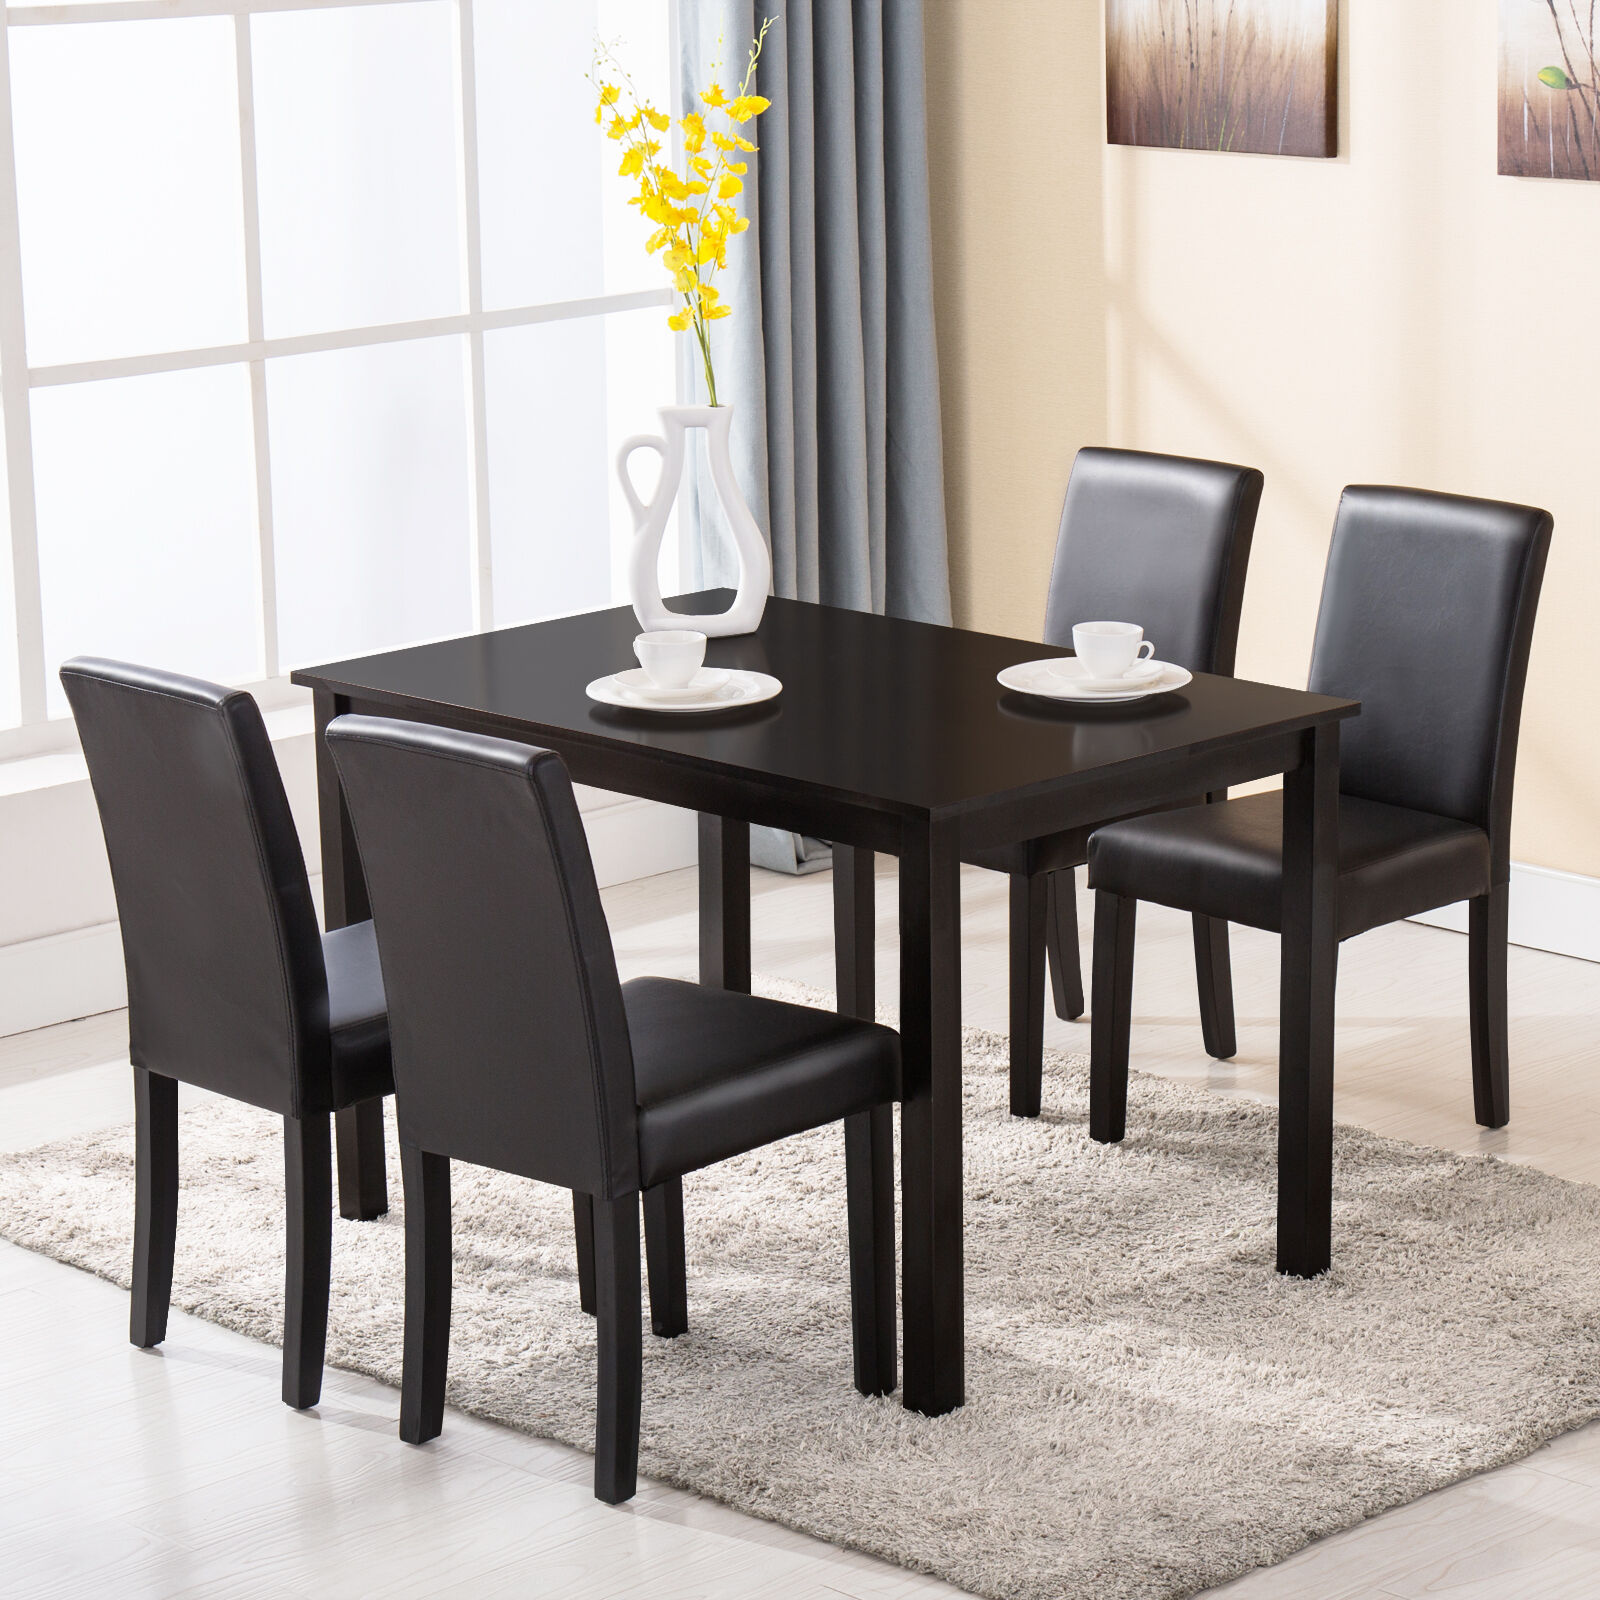 5 piece dining table set 4 chairs wood kitchen dinette for Dining room table and 4 chairs